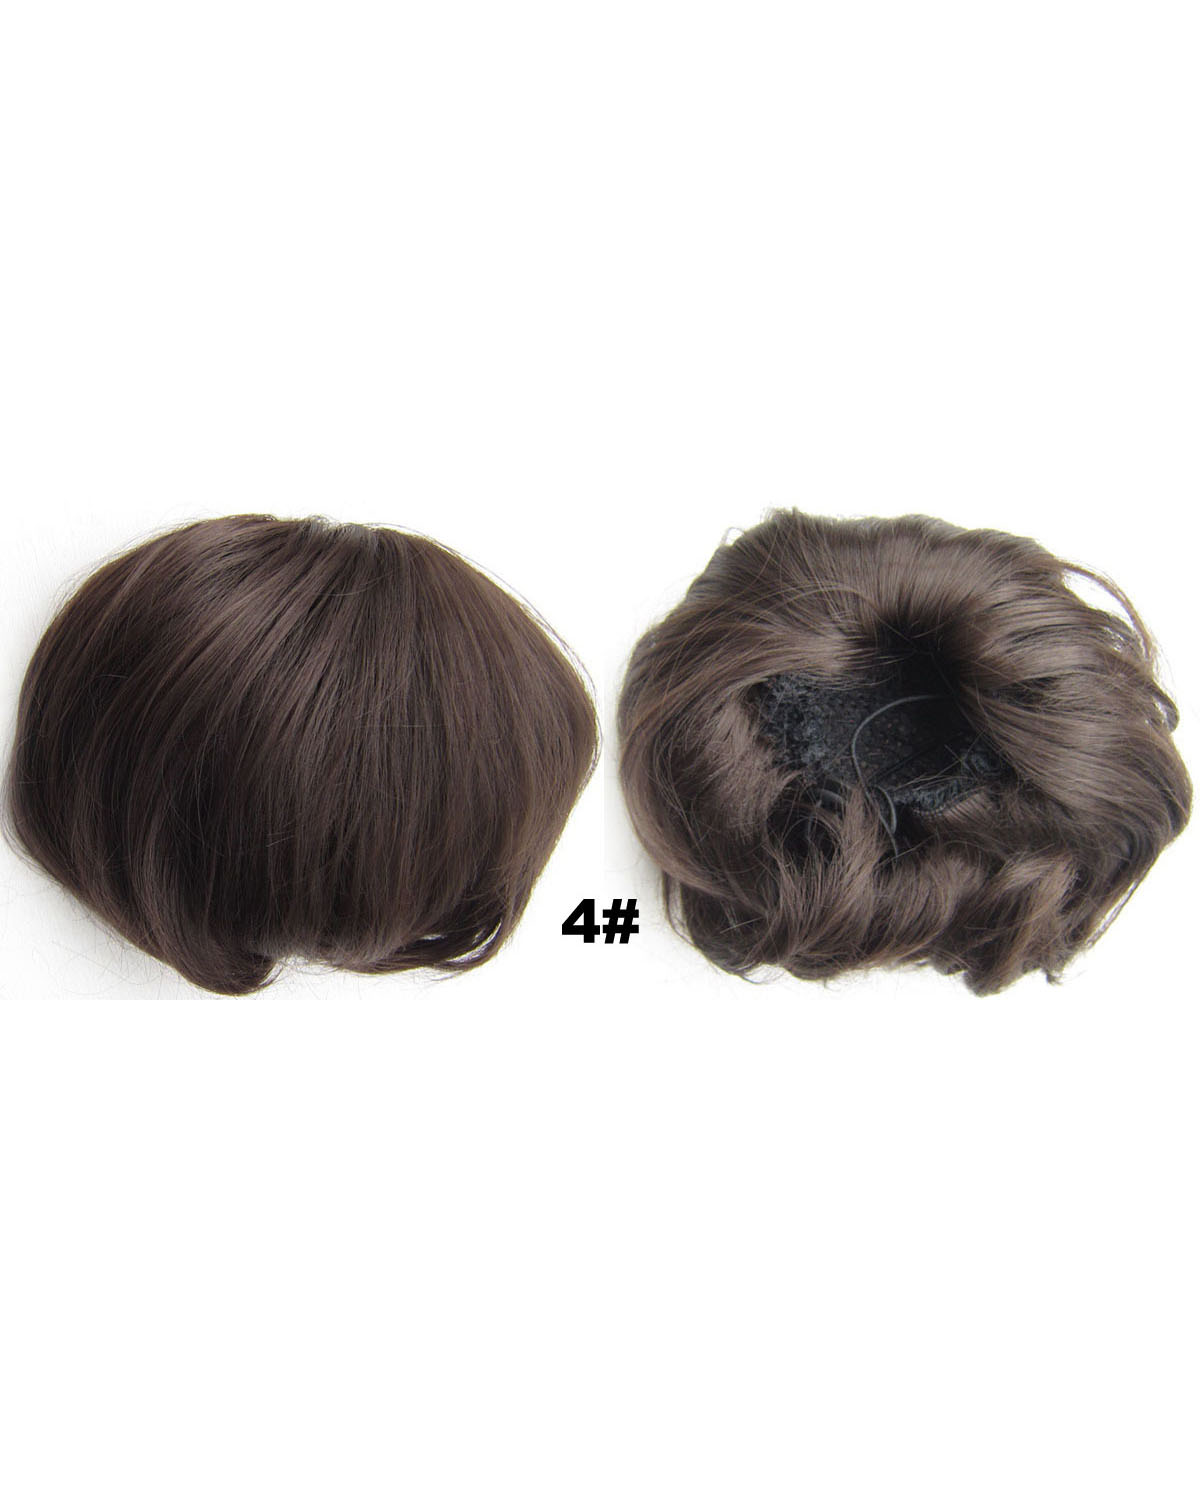 Ladies Winsome Straight Short Hair Buns Drawstring Synthetic Hair Extension Bride Scrunchies 4#